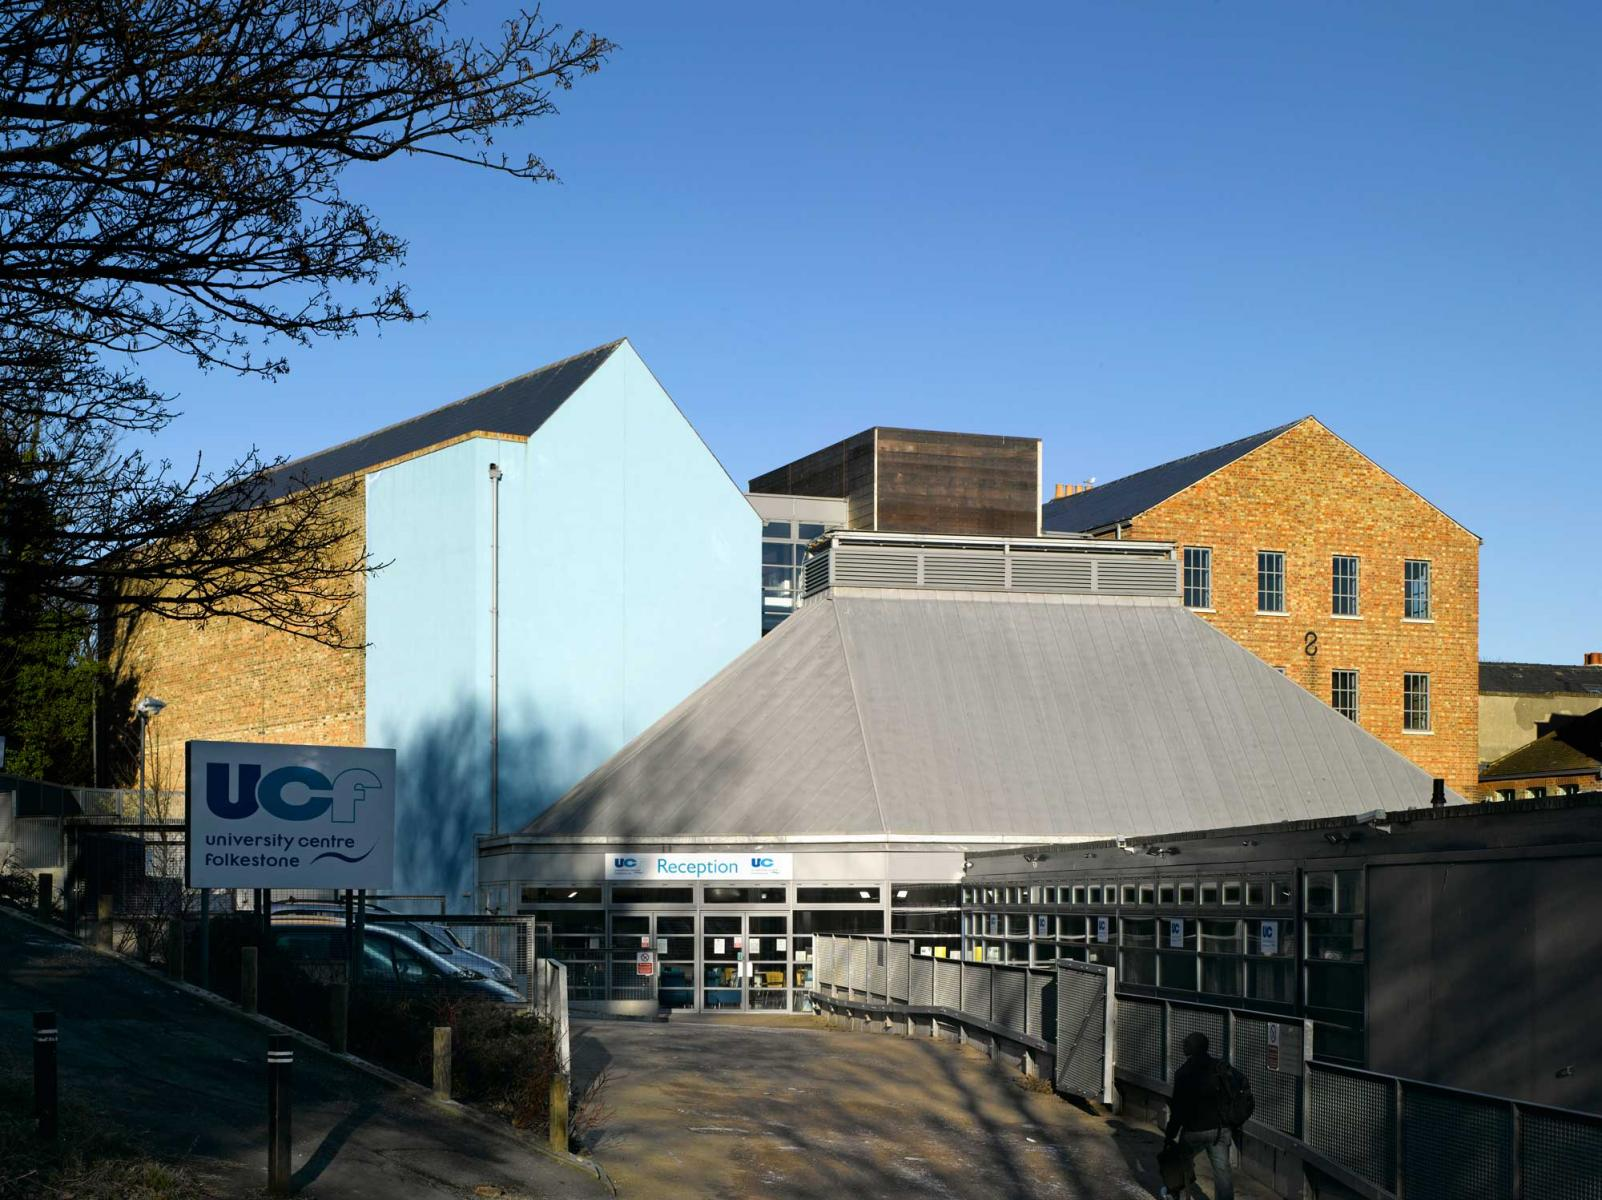 University Centre, Folkestone - Exterior View